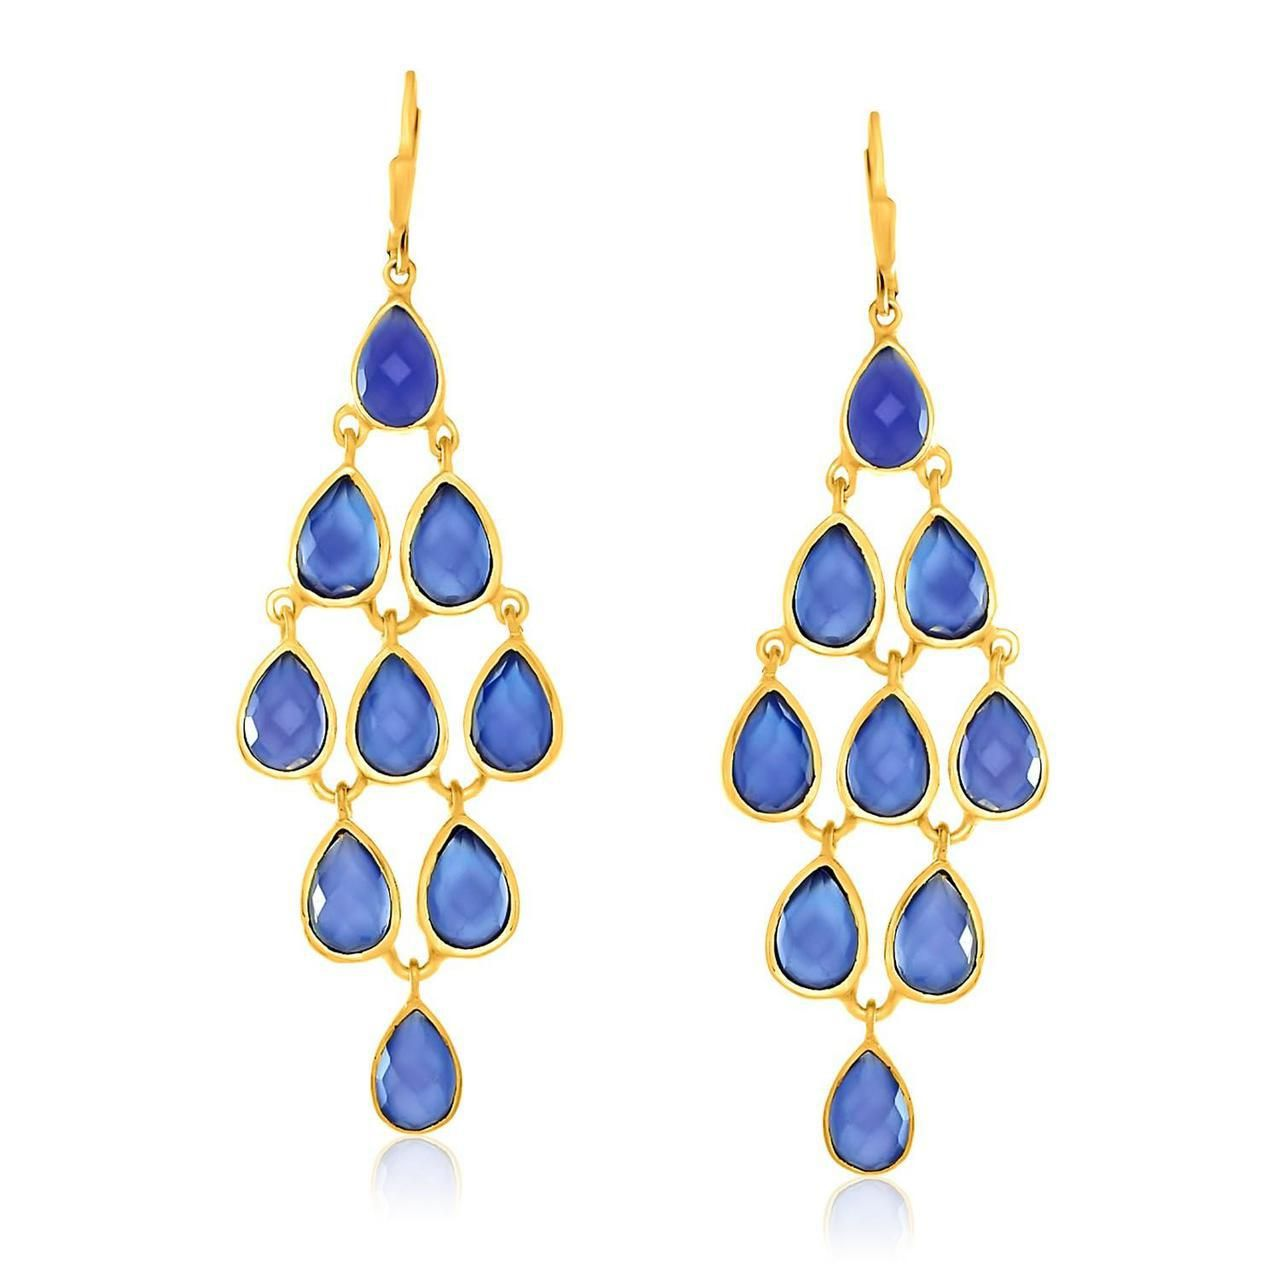 Sterling Silver Yellow Gold Plated Cascading Teardrop Blue Chalcedony Earrings